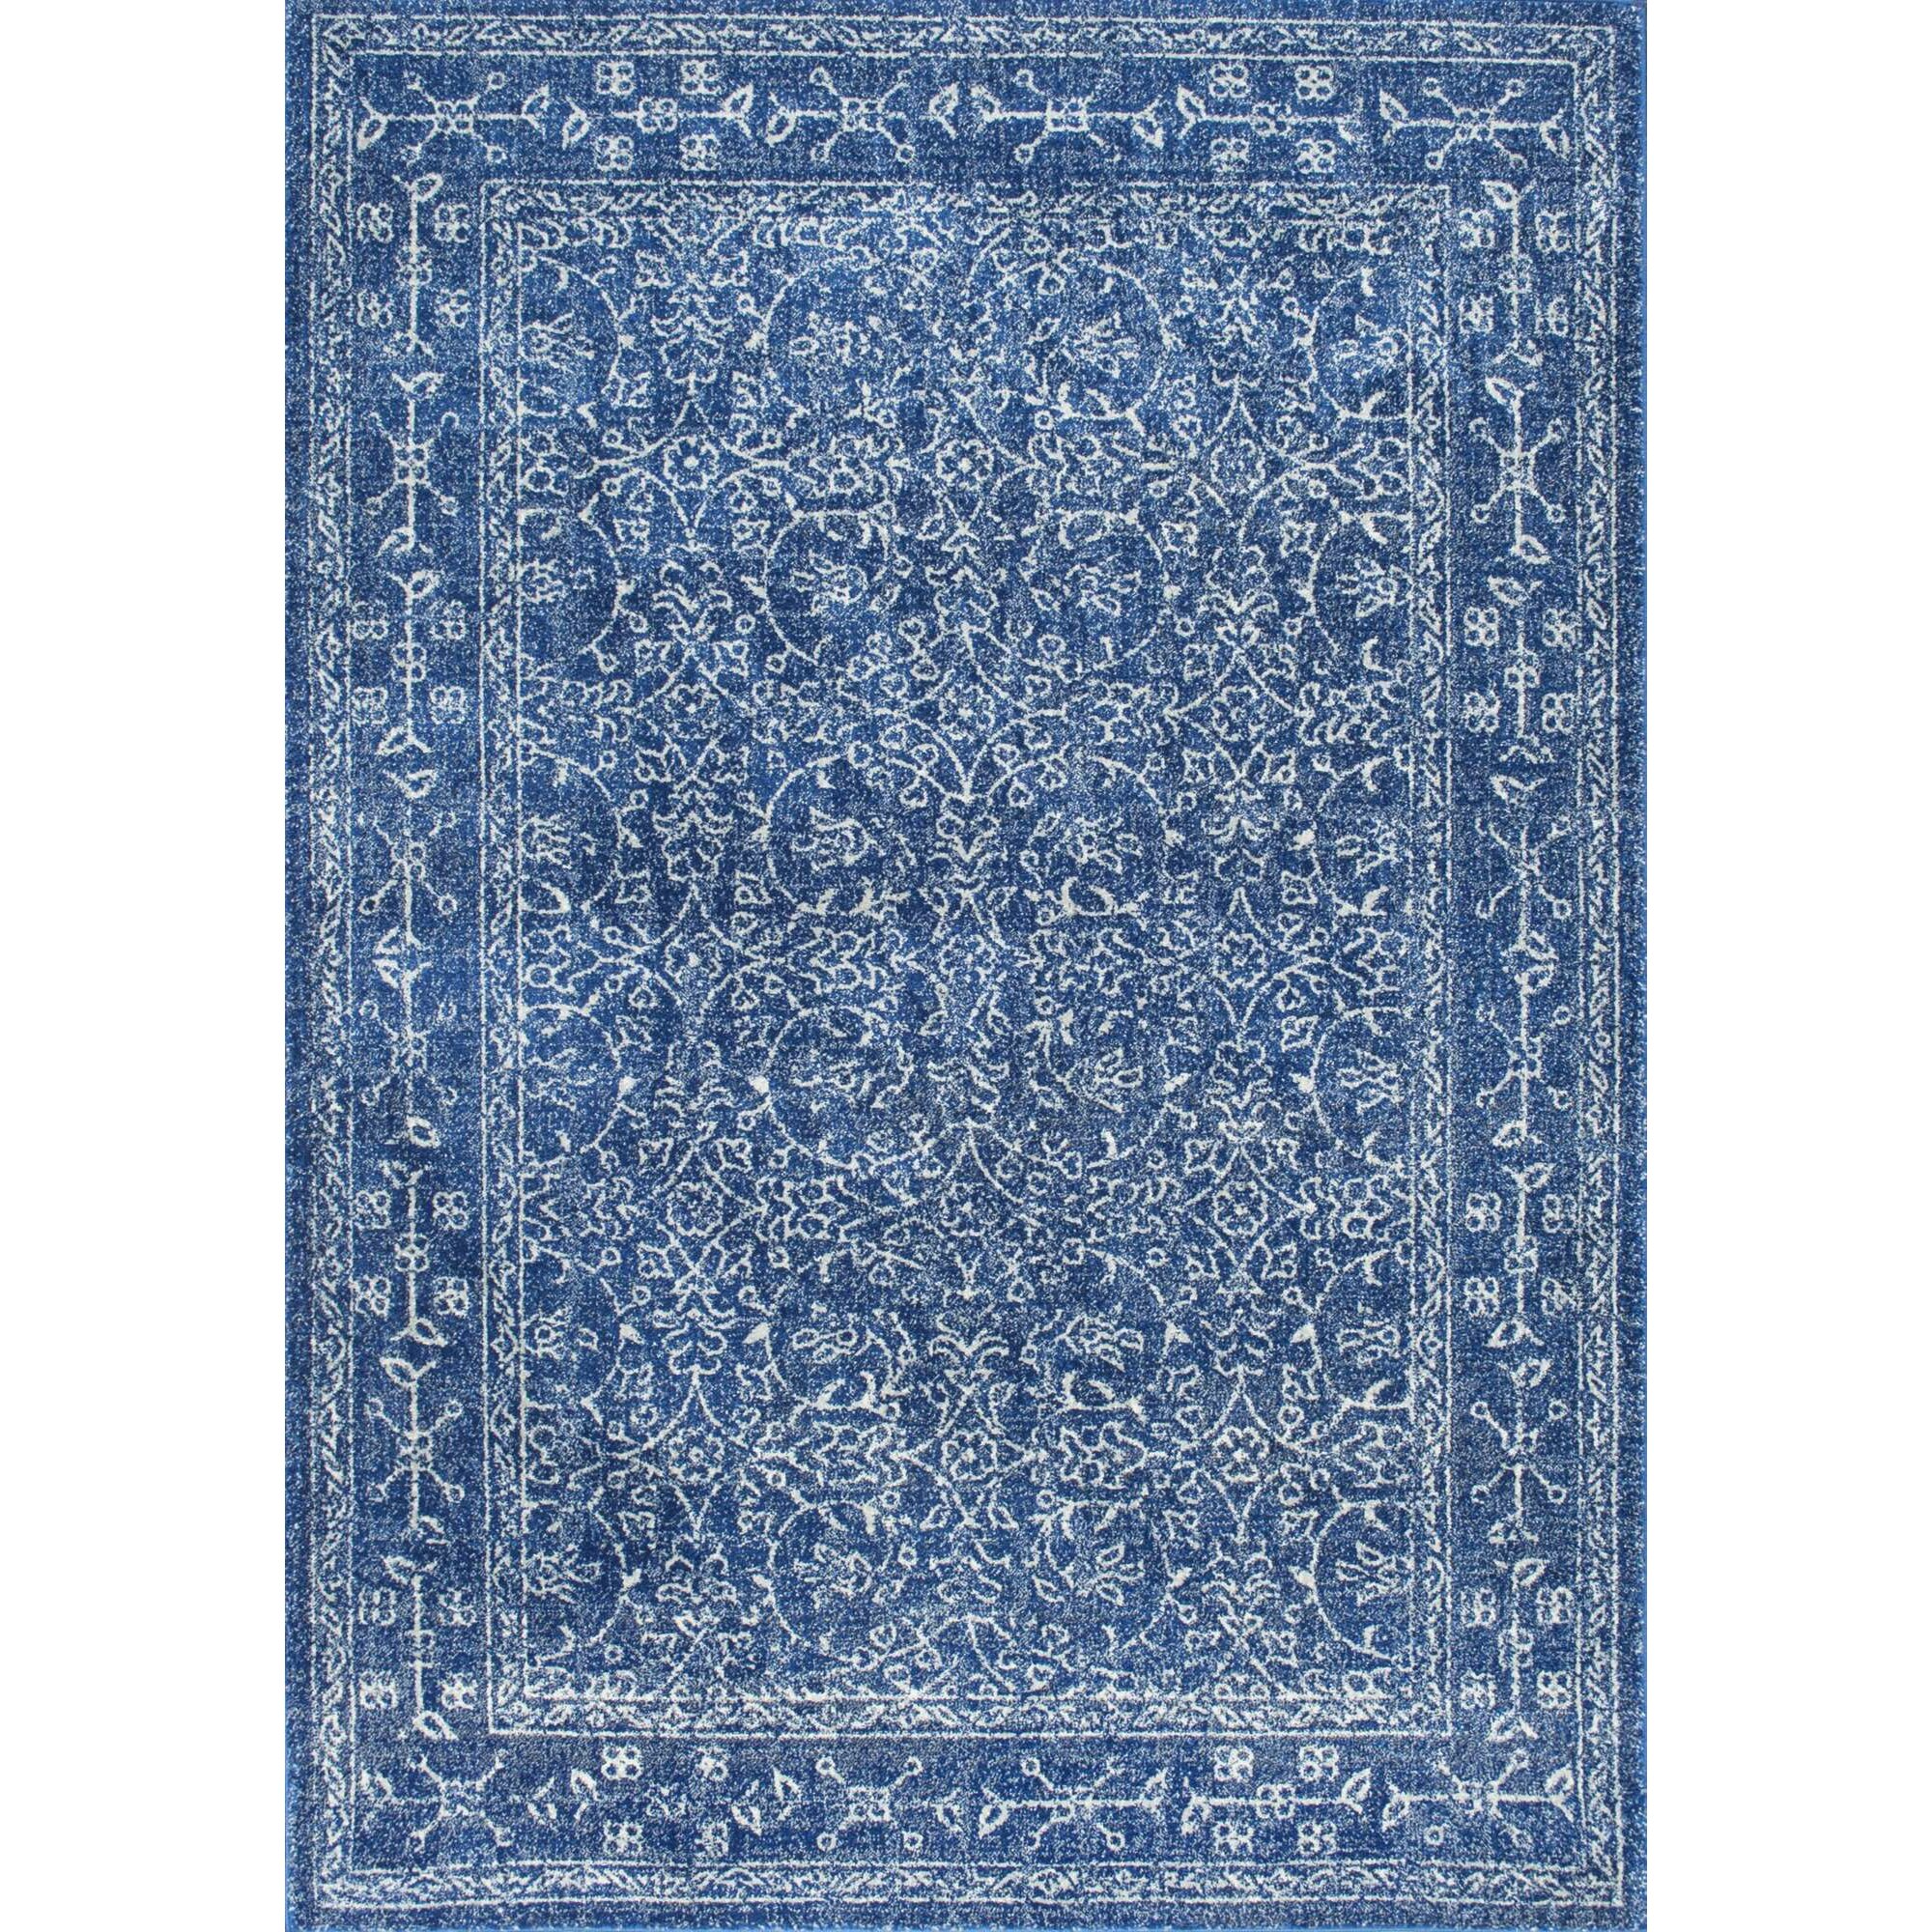 awesome rug green transitional white light rectangl marvelous living blue bright navy area designs decor rugs and room unique purple